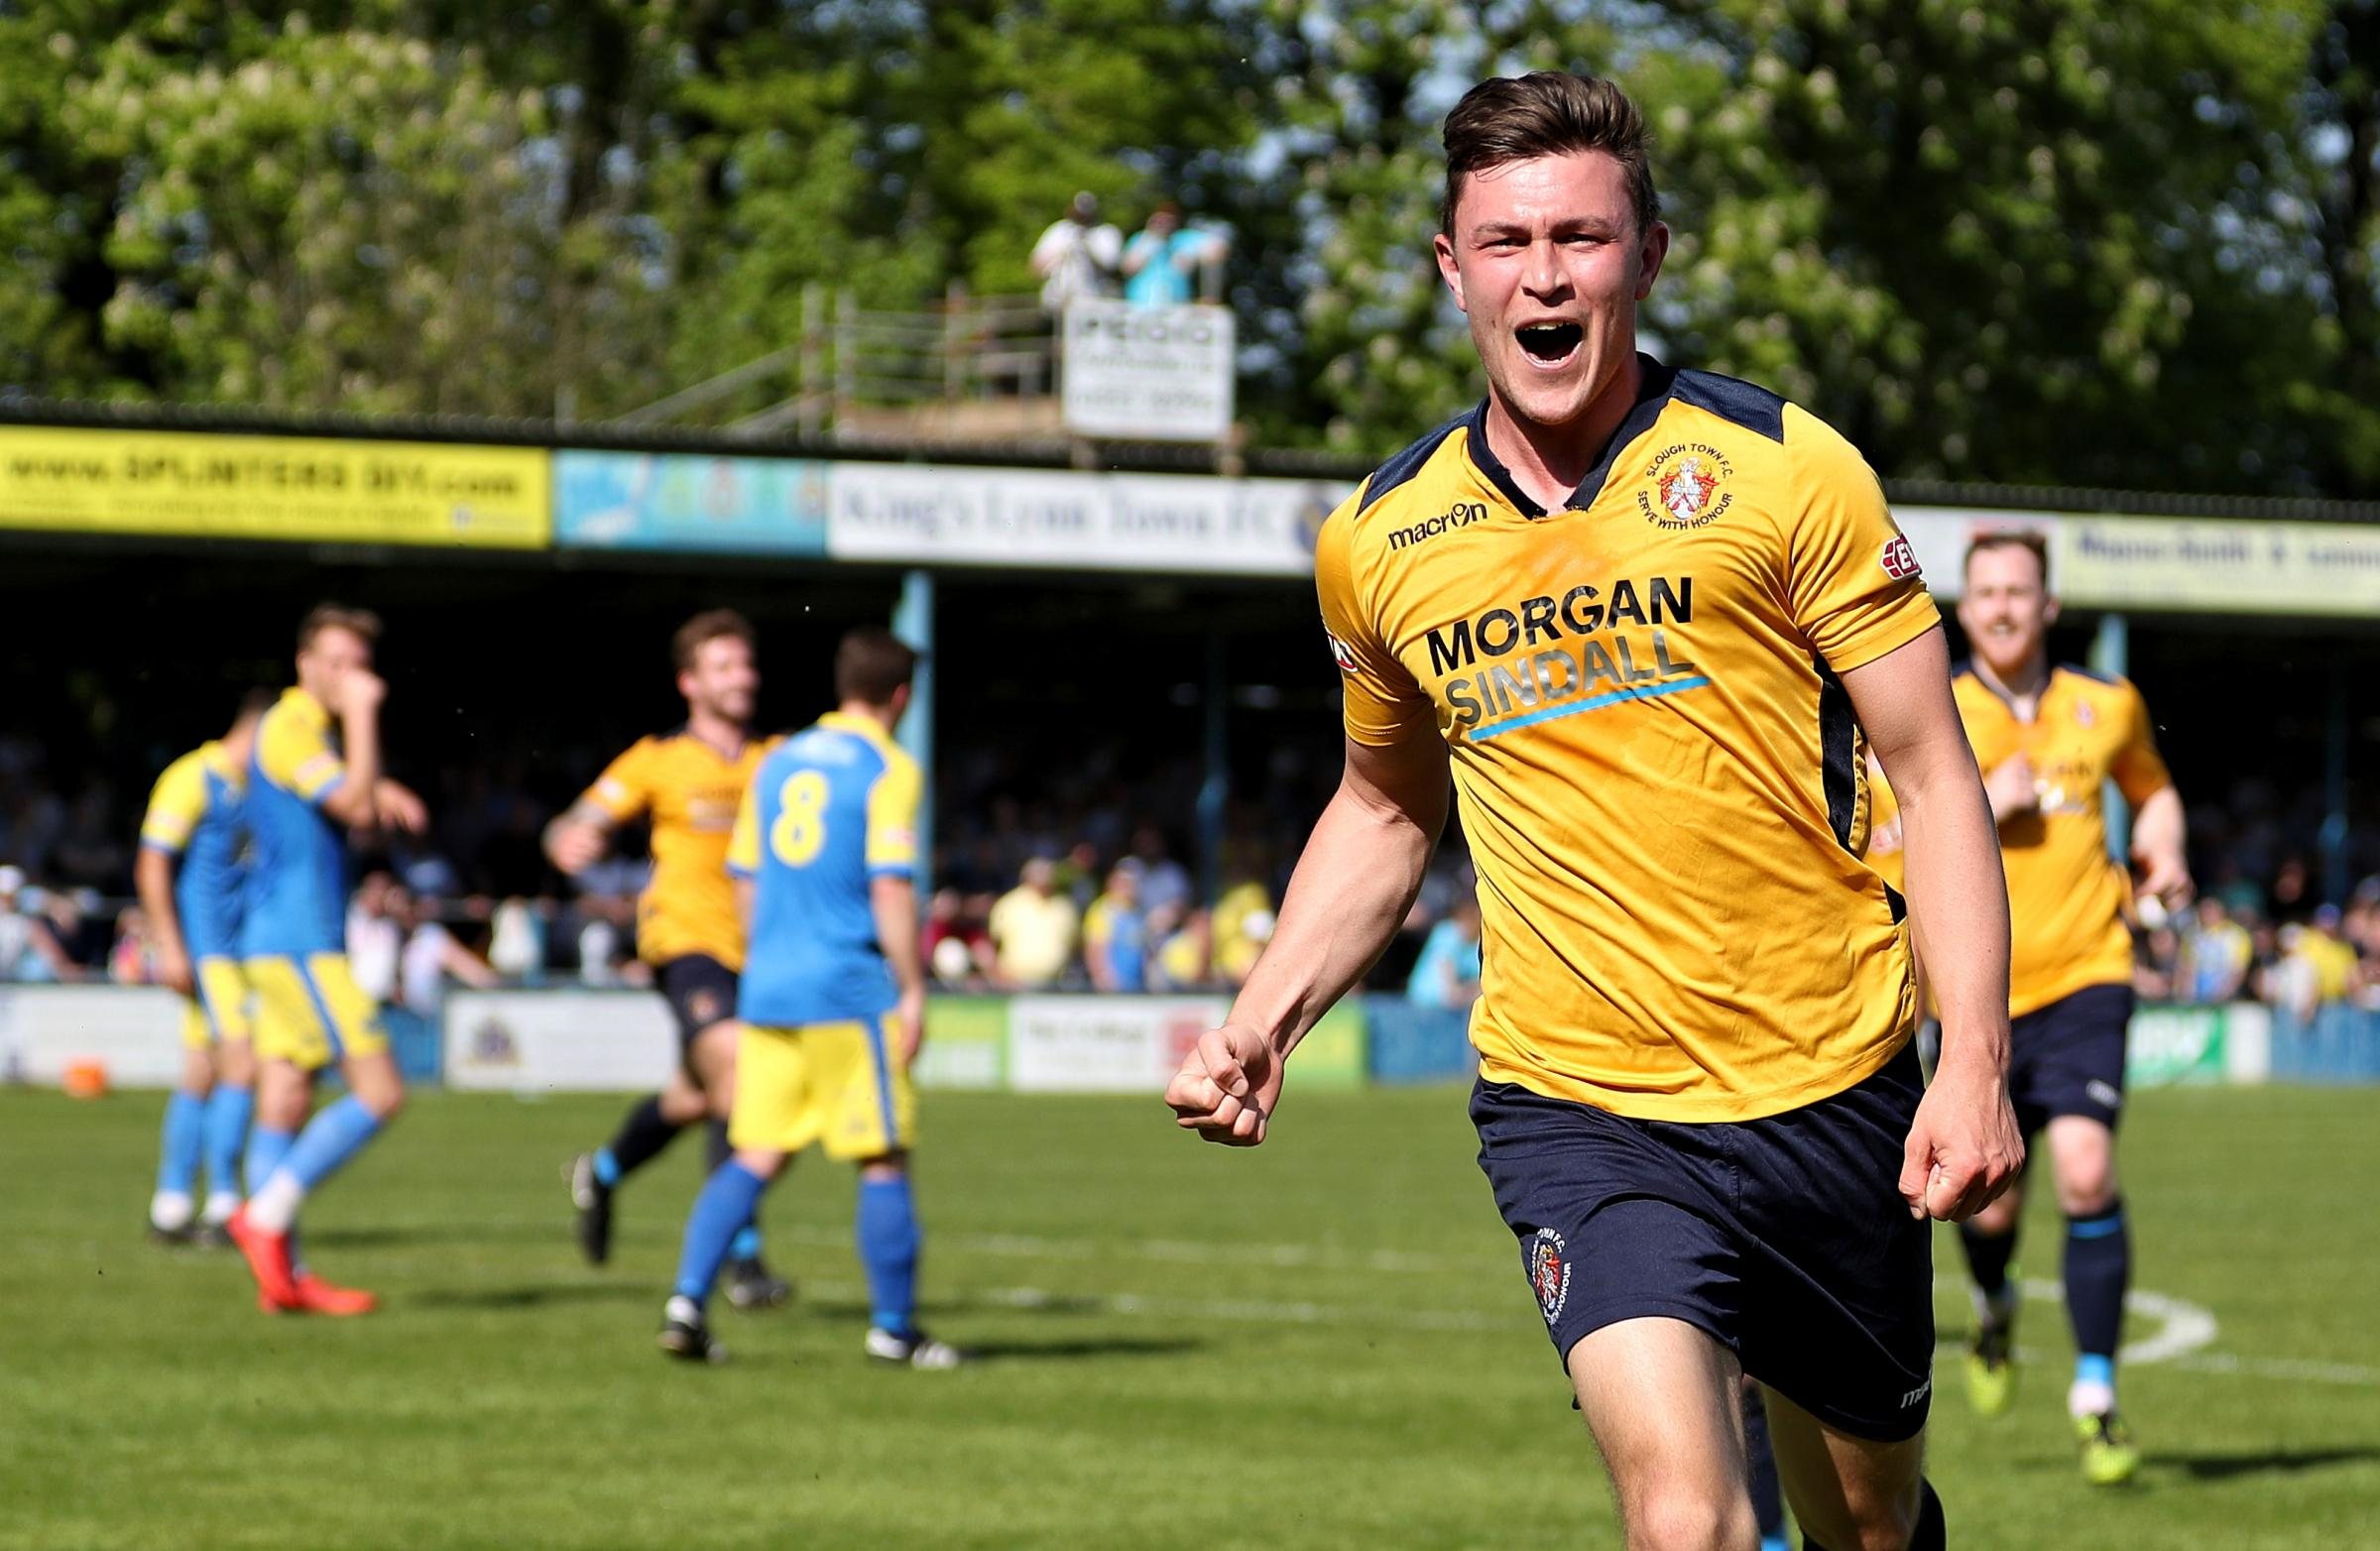 Slough Town striker Chris Flood celebrates his opening goal - his 24th of the season - in the 2-1 win against Kings Lynn Town in the Southern Premier Division play-off final on Bank Holiday Monday. PHOTOS: Gary House Photography.